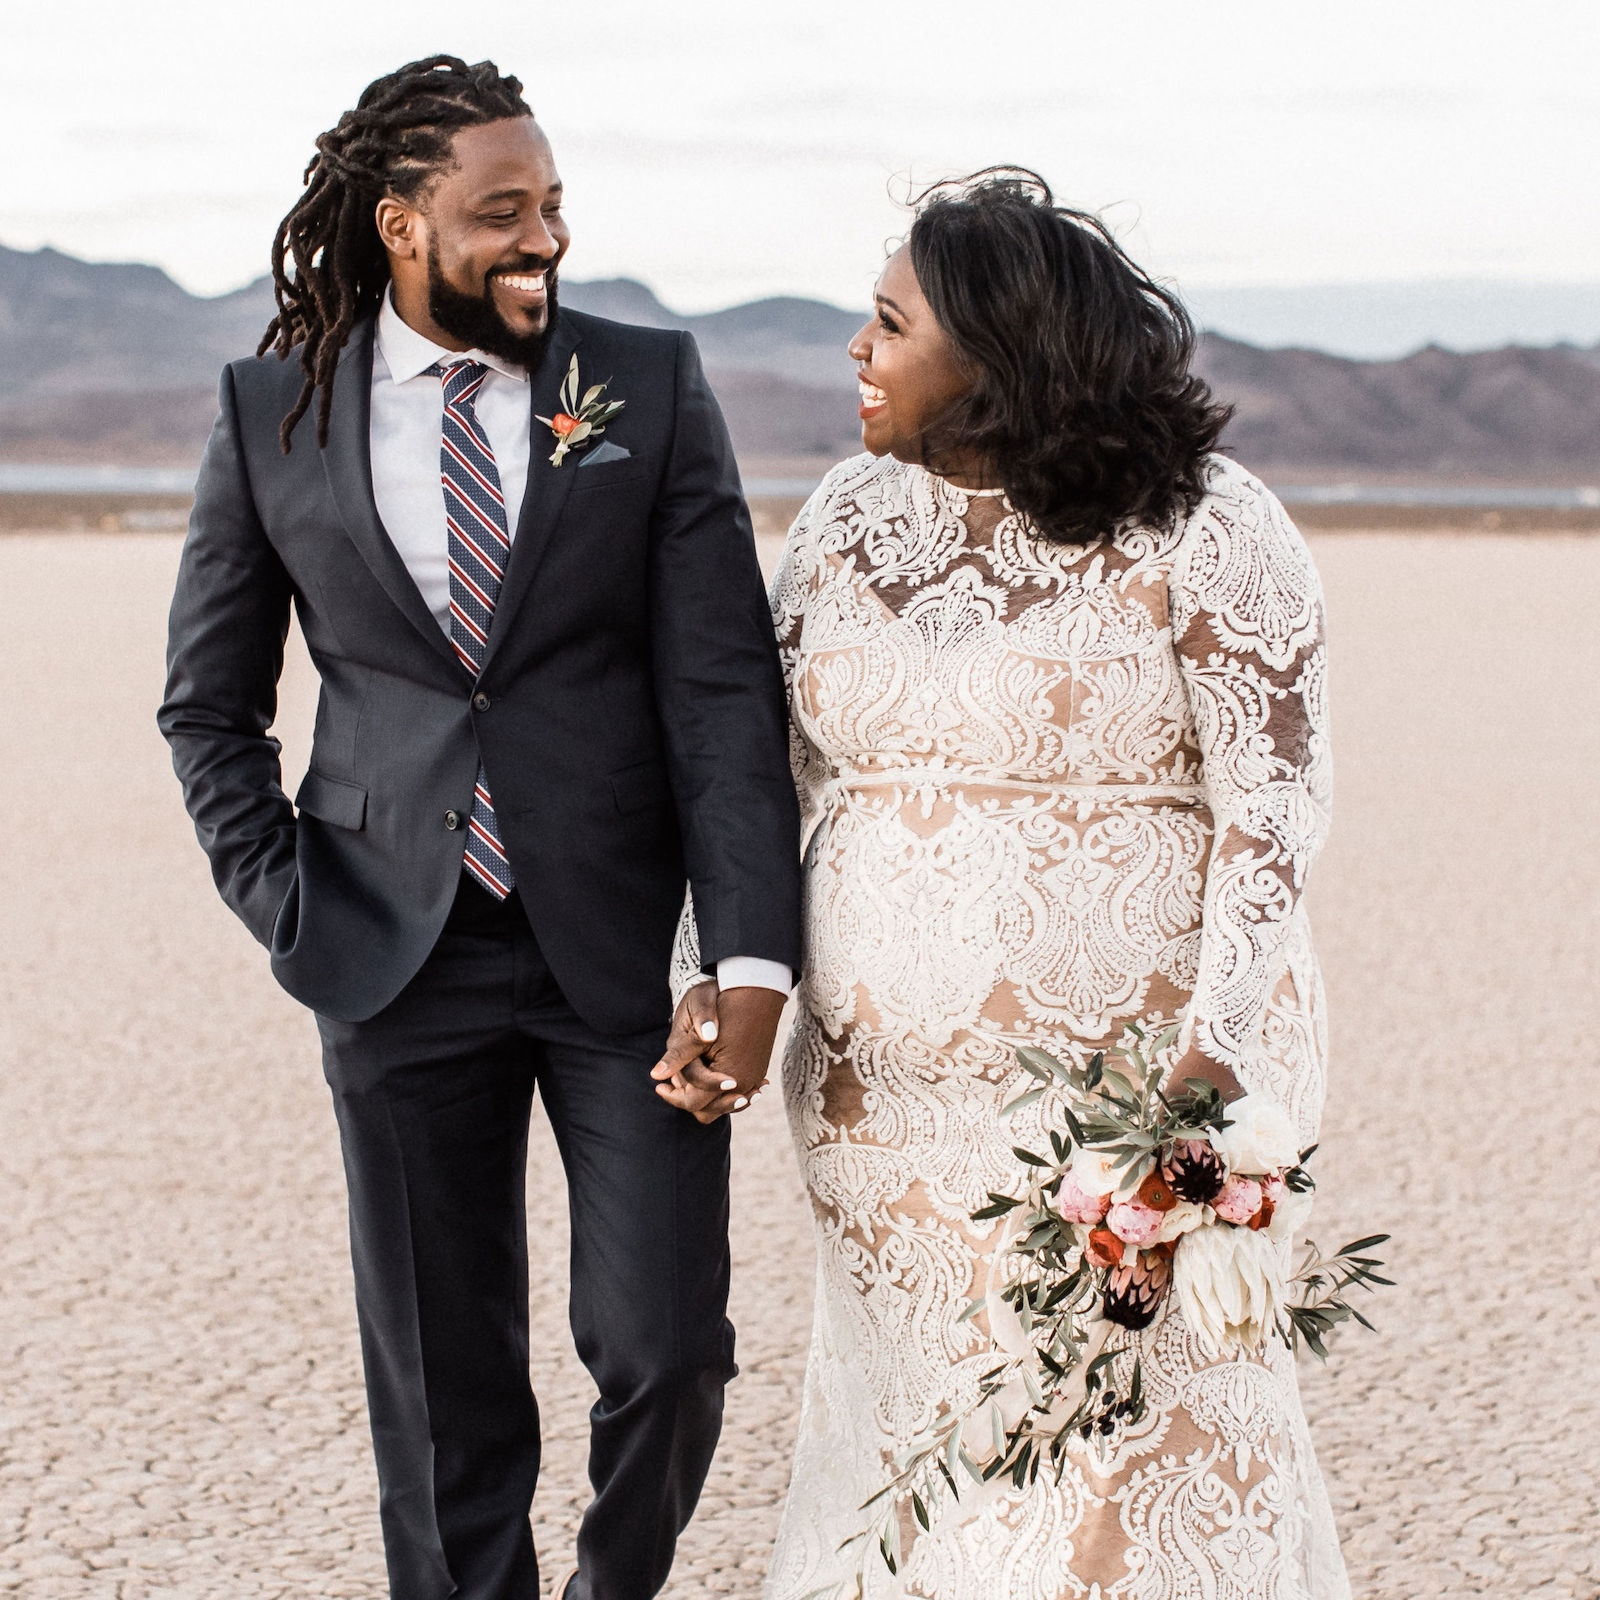 las vegas elopement photographer00011.jpg